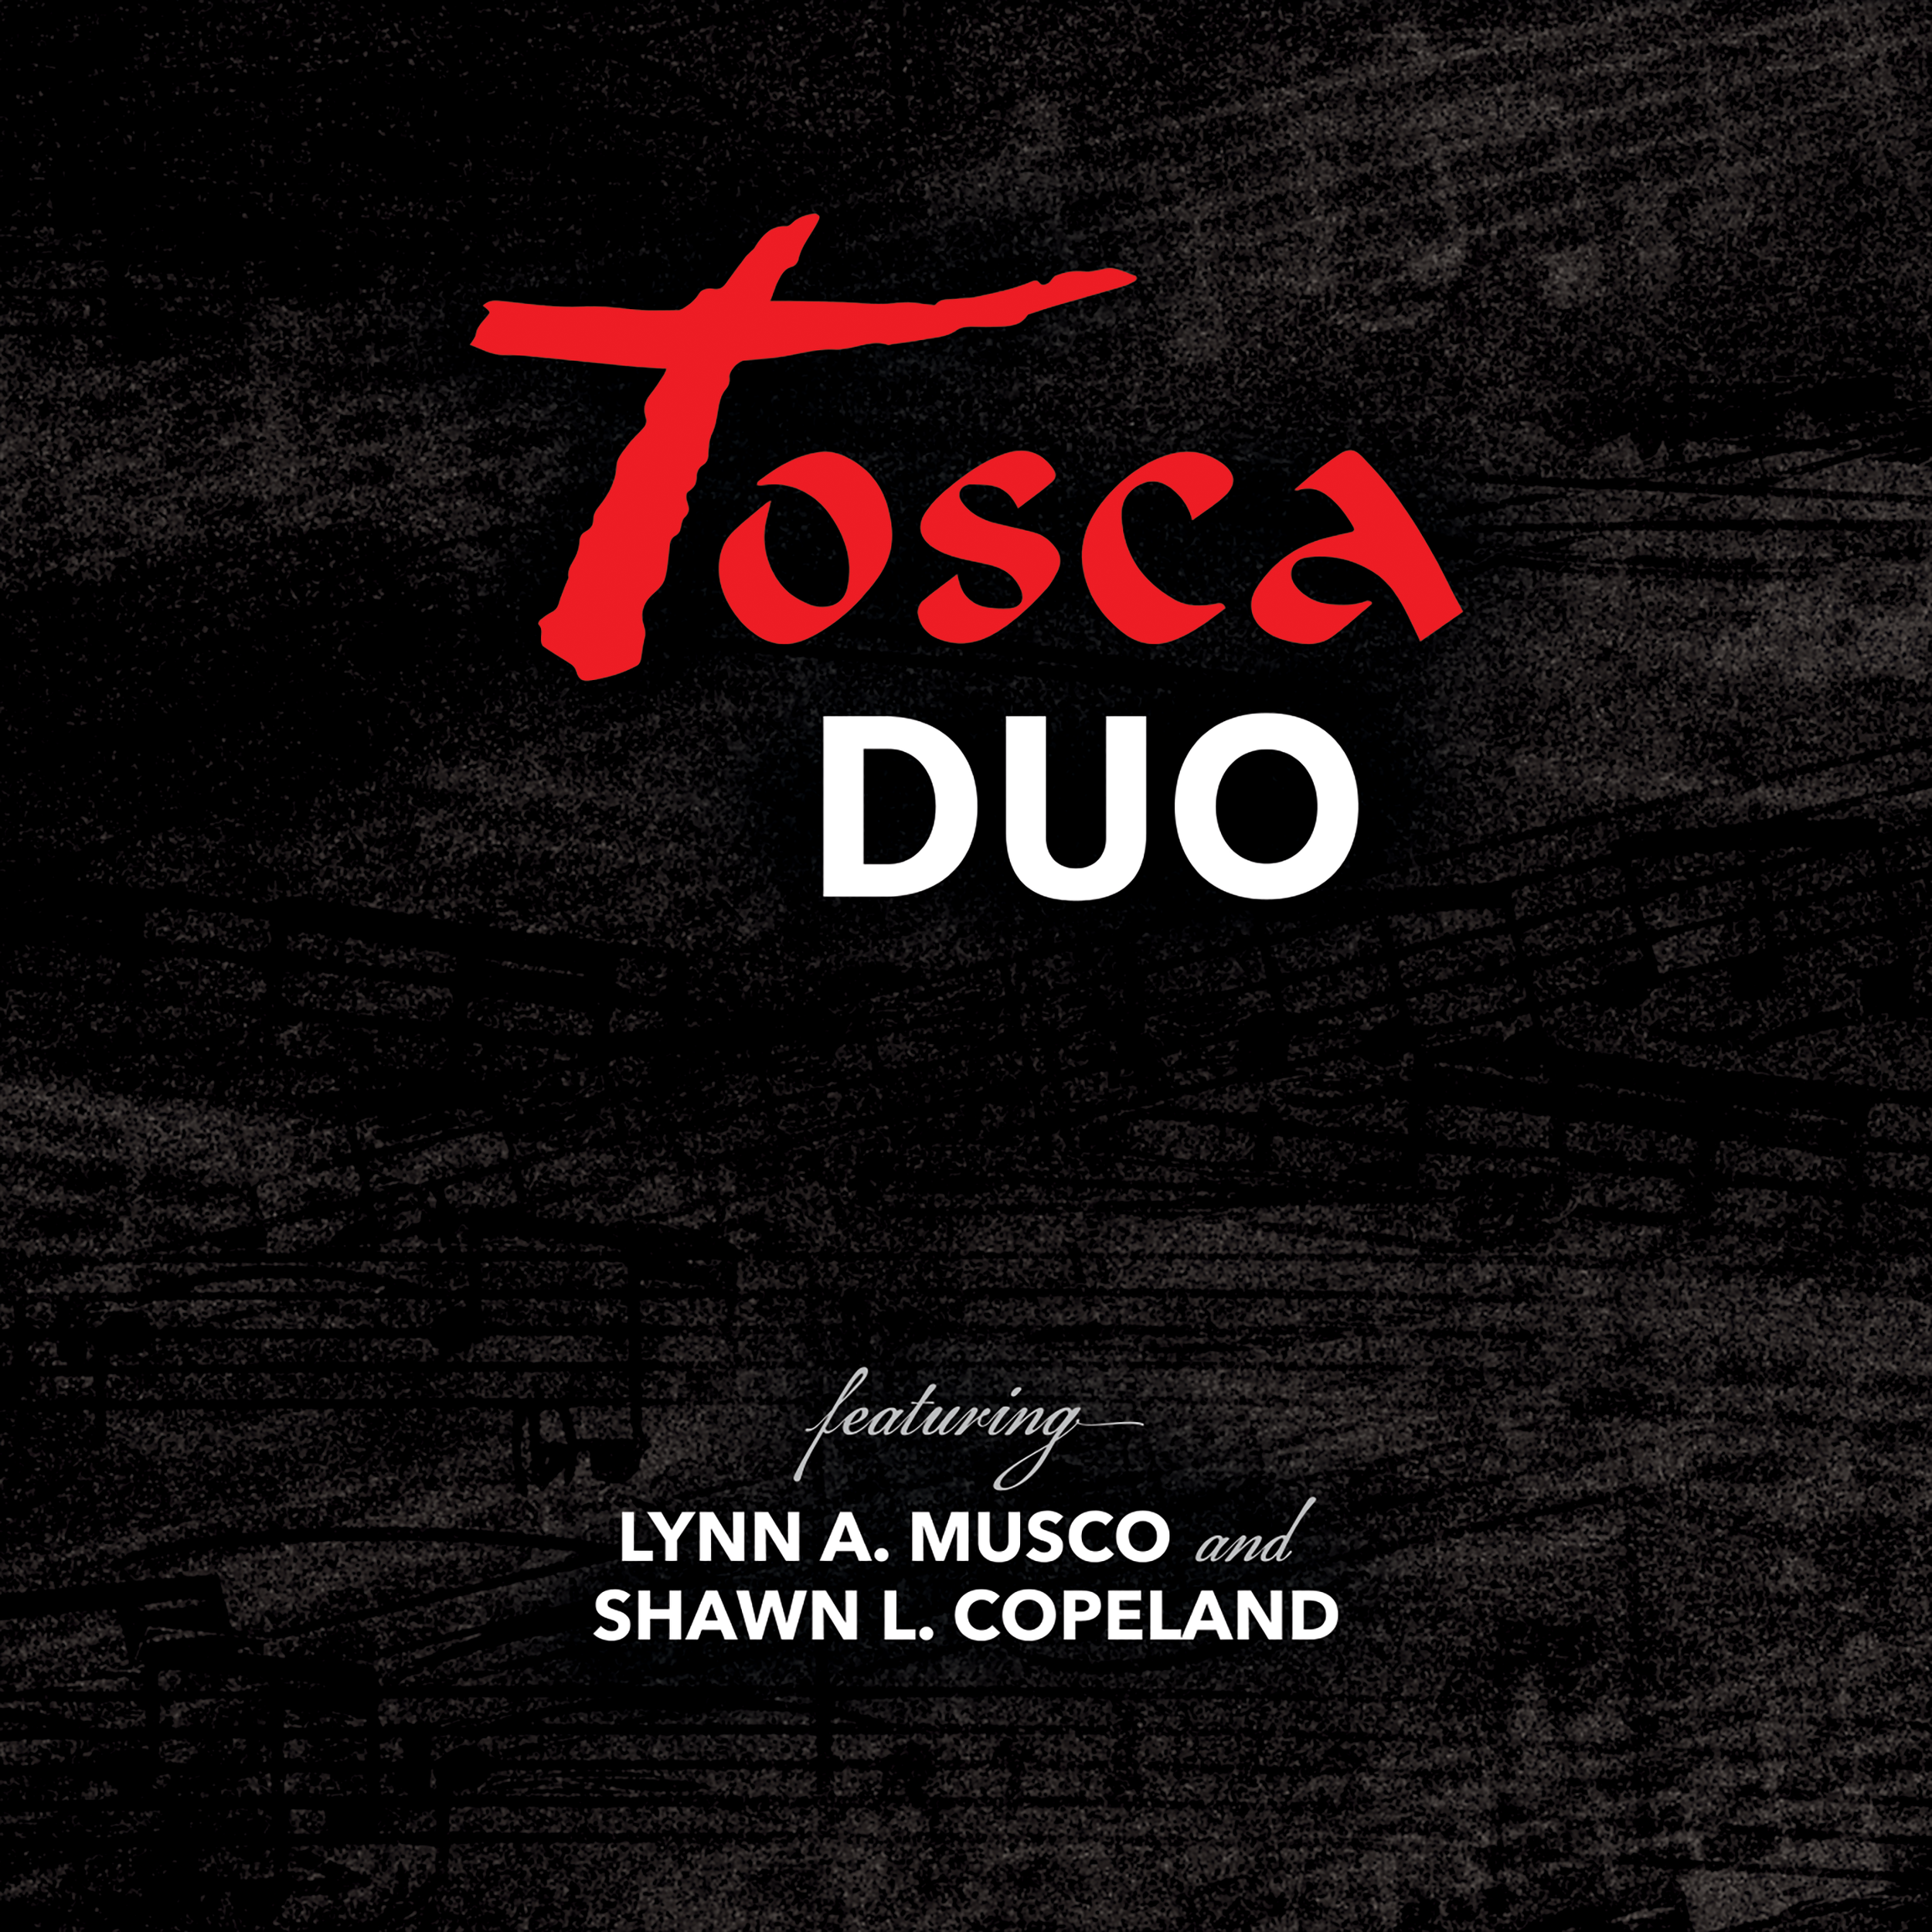 Tosca  DUO   released June 2017!  Buy it at  iTunes ,  Amazon , and  CDBaby .